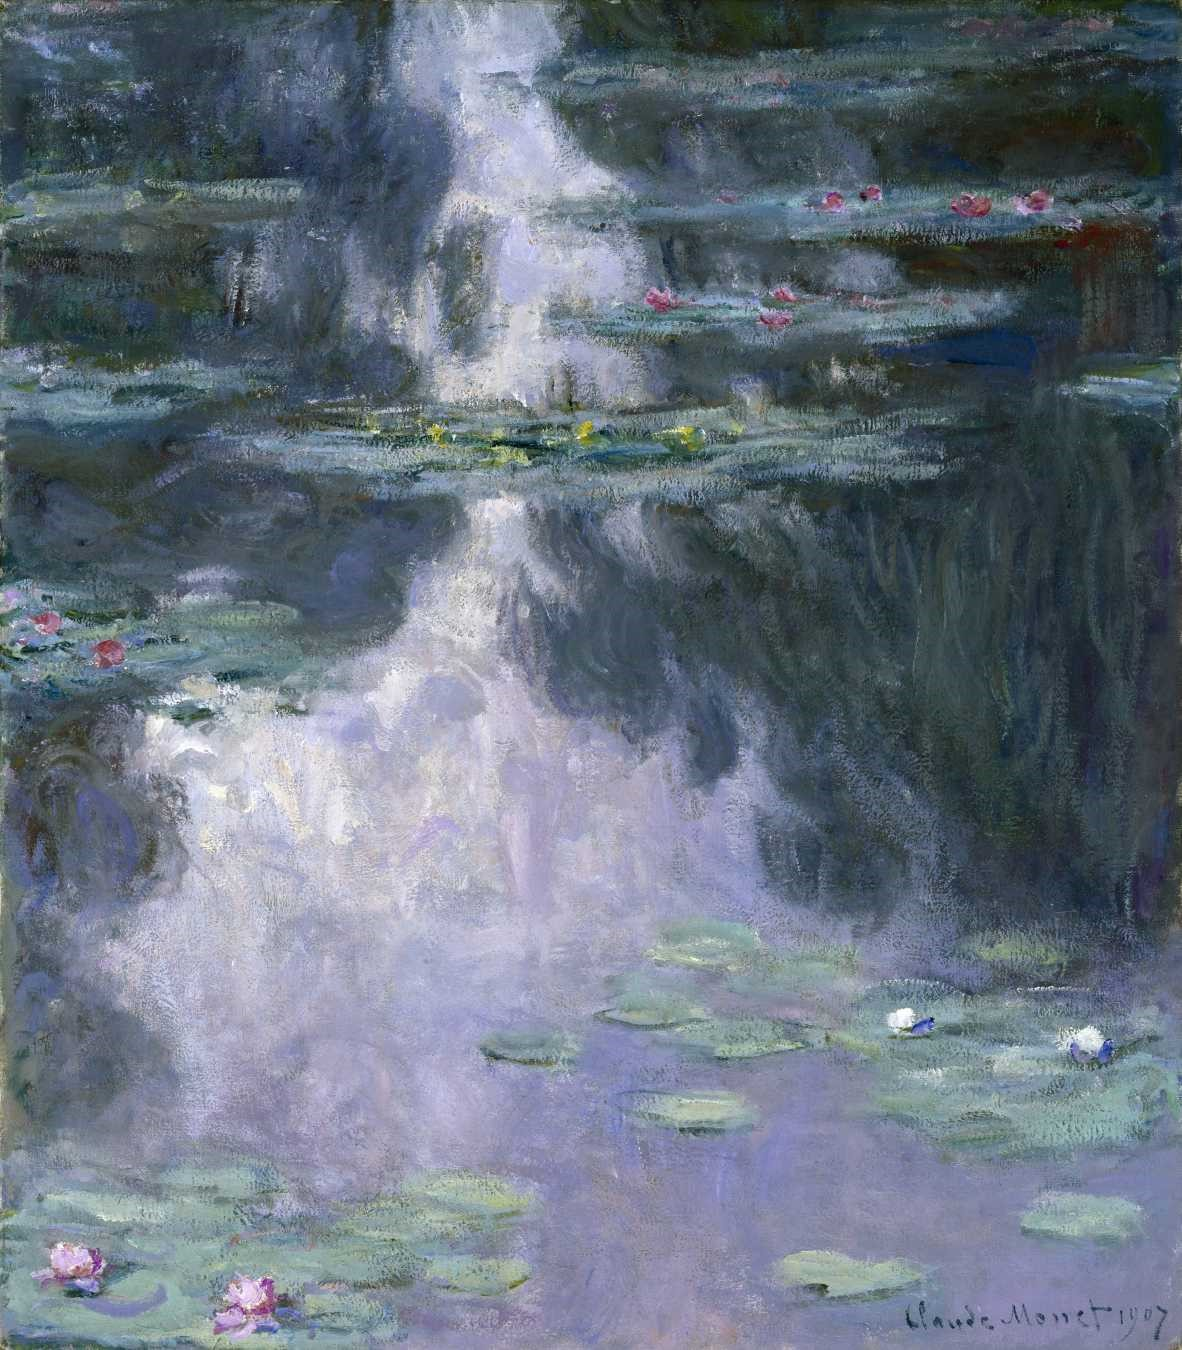 Claude Monet, Water Lilies (Nymphéas), 1907